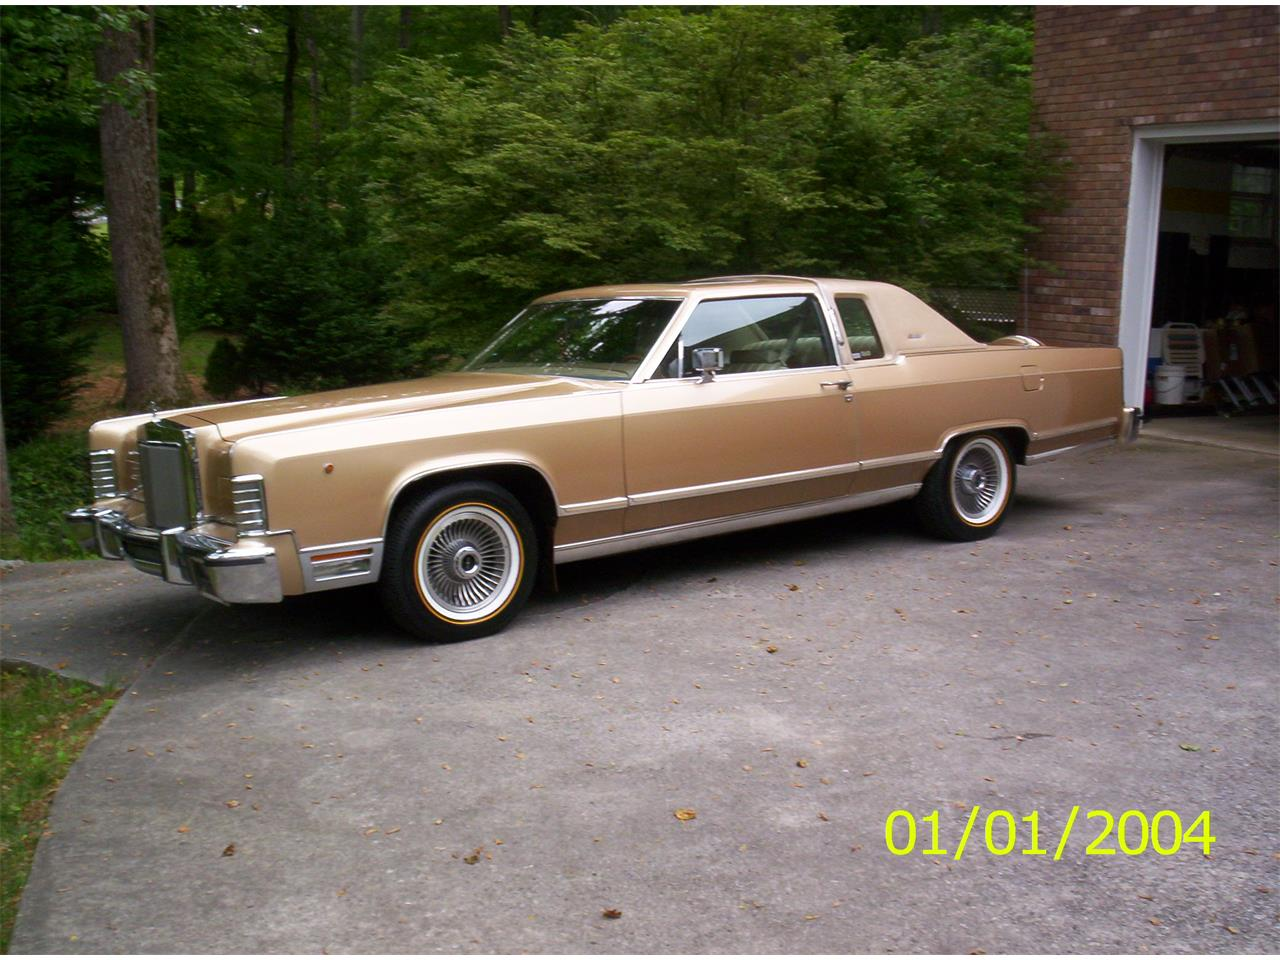 Large Picture of '79 Town Car located in Georgia - $17,000.00 Offered by a Private Seller - C6IM